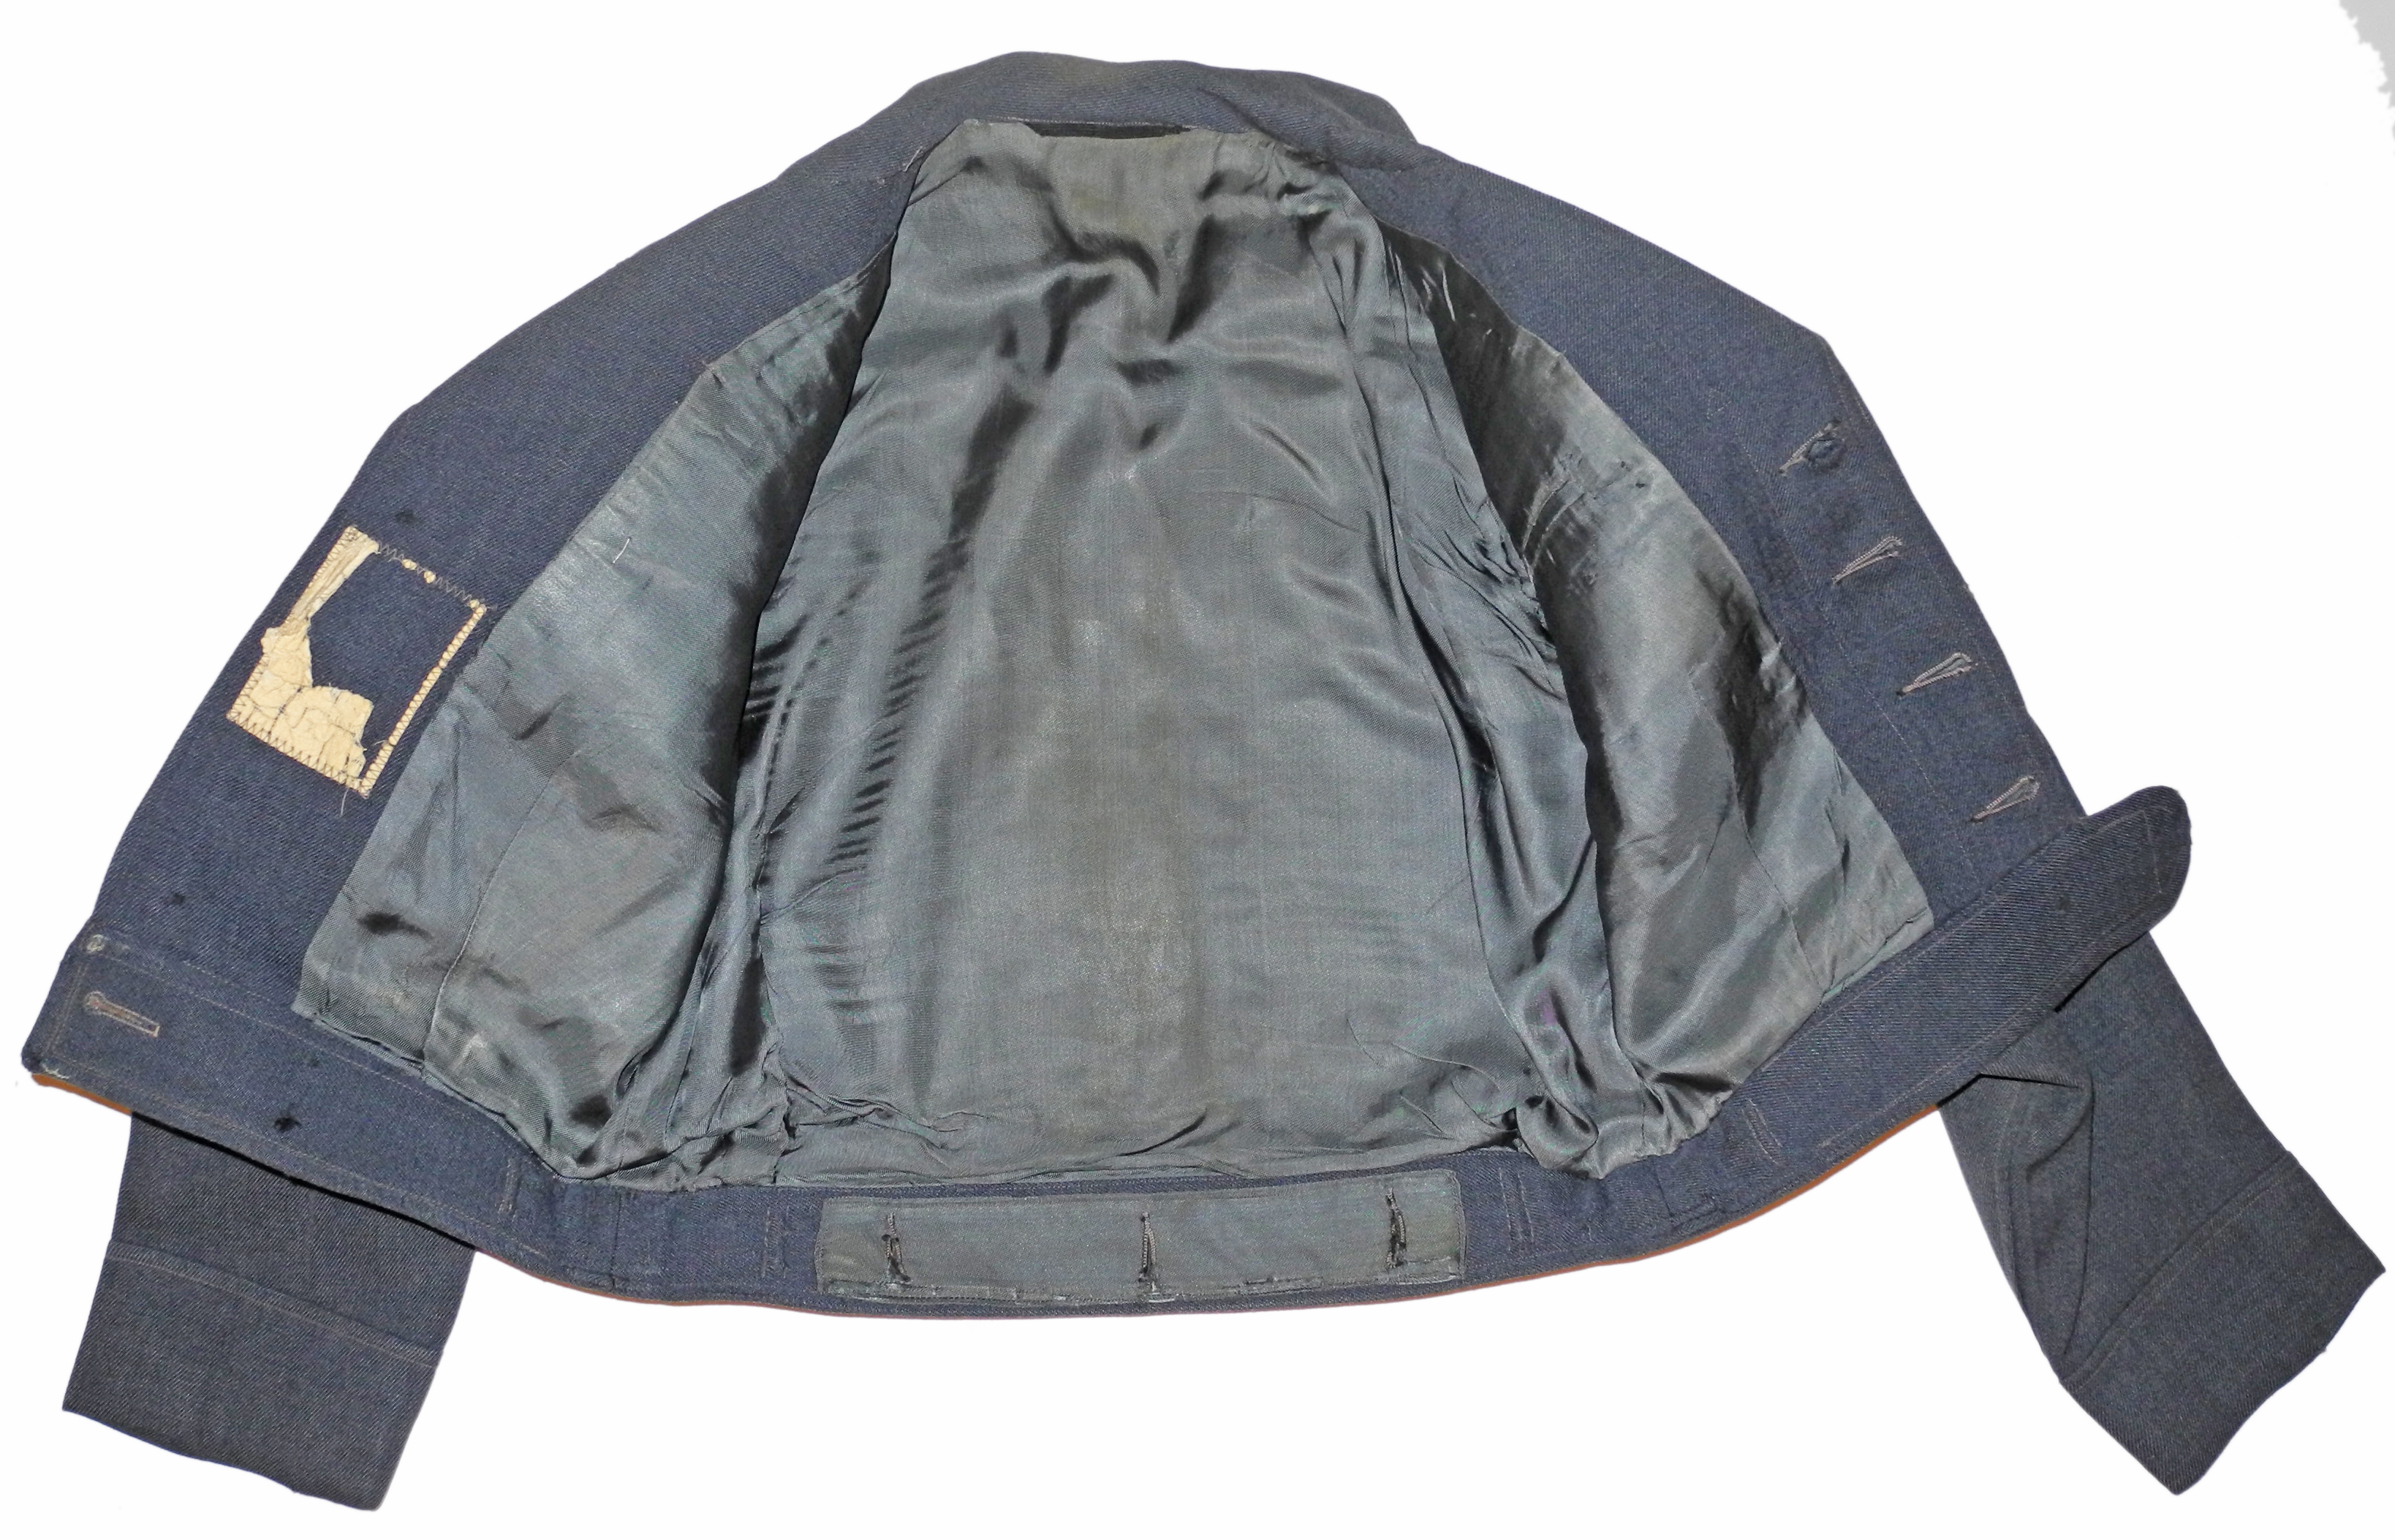 Late 1940s RCAF battle-dress blouse